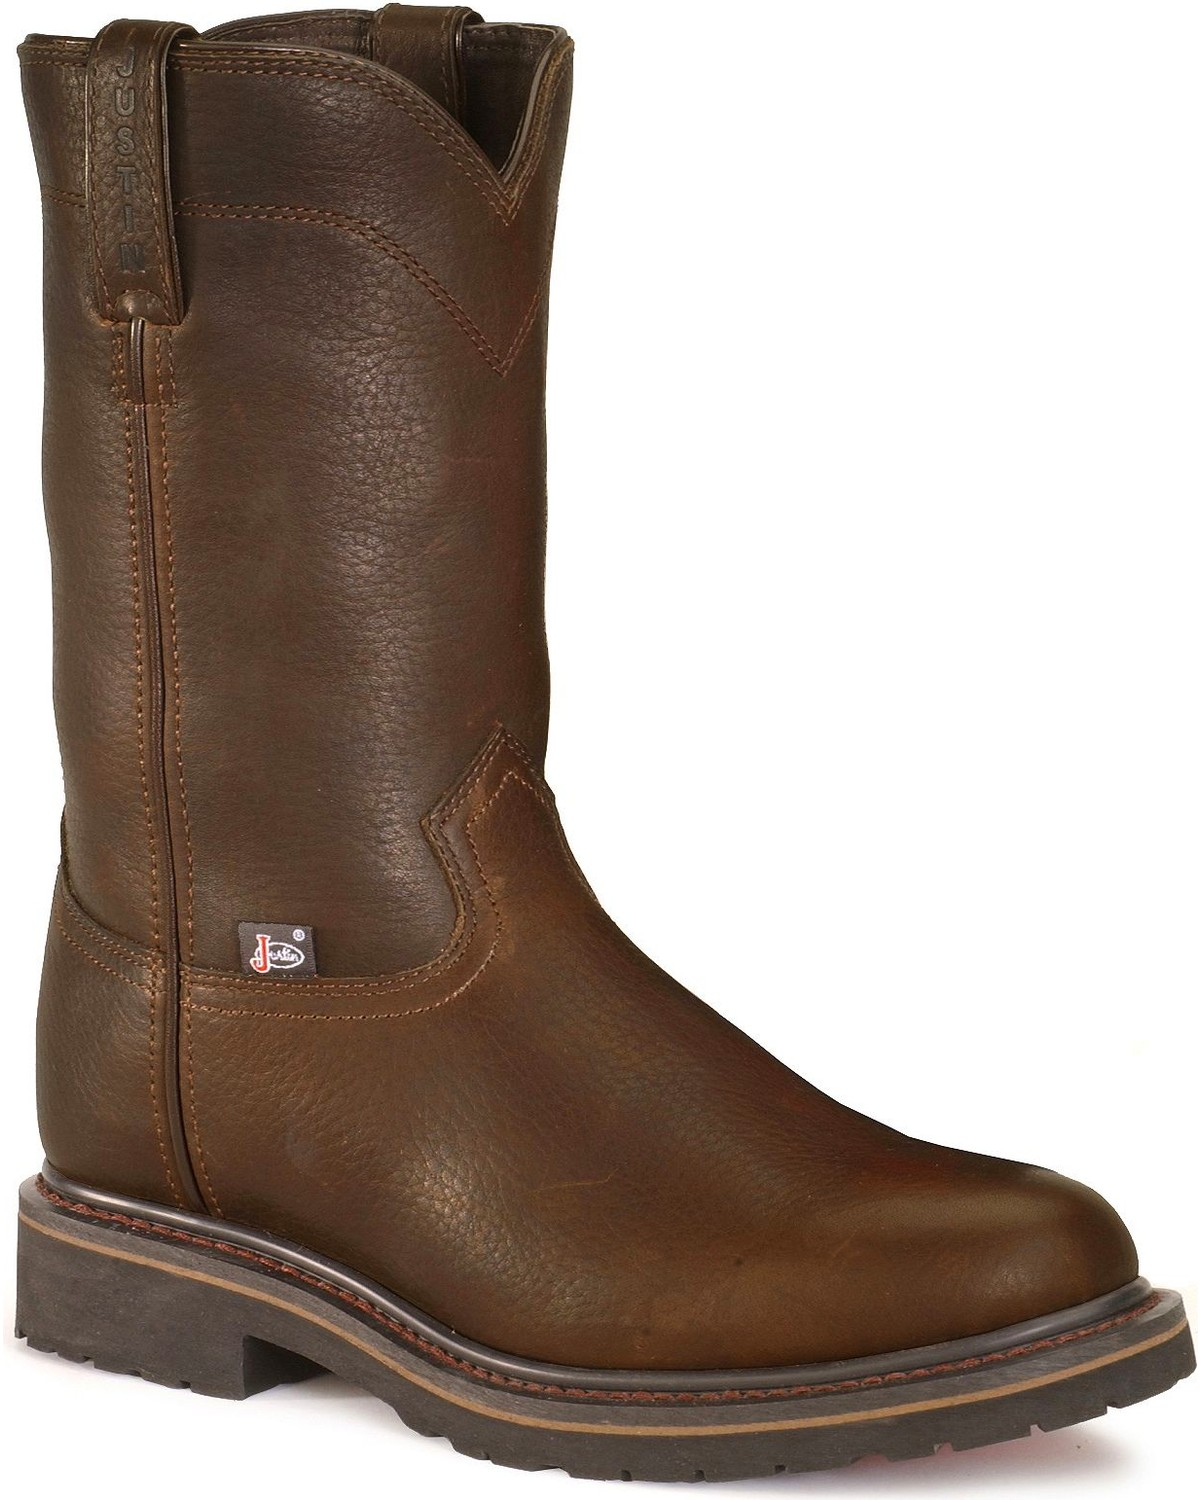 Justin Mens 10 Steel Toe Trapper Western Work Boots, Brown, hi-res